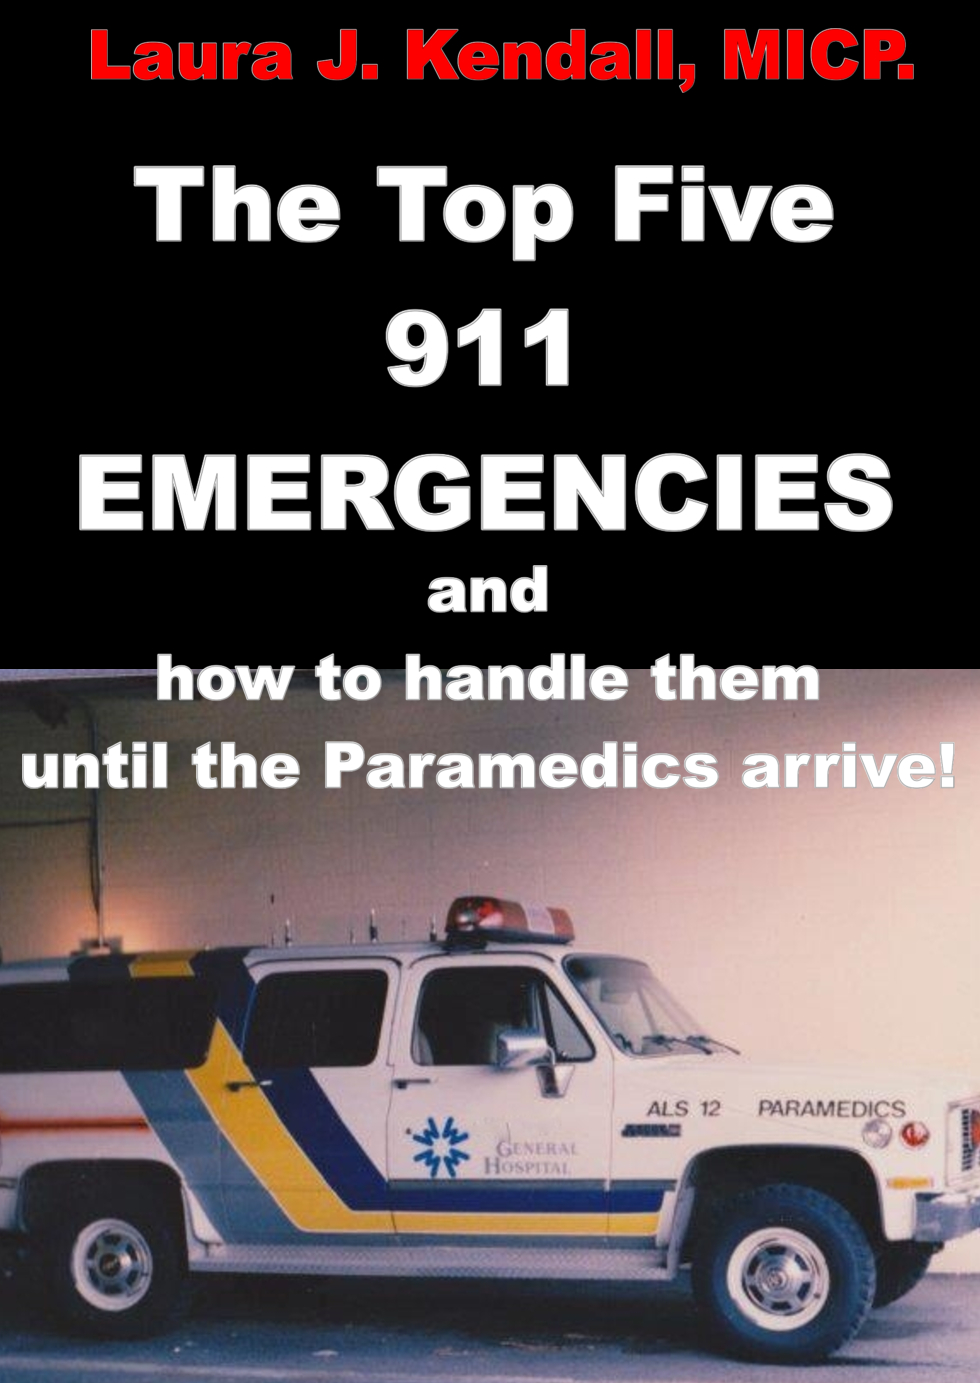 The Top Five 911 Emergencies and how to handle them until the Paramedics arrive!